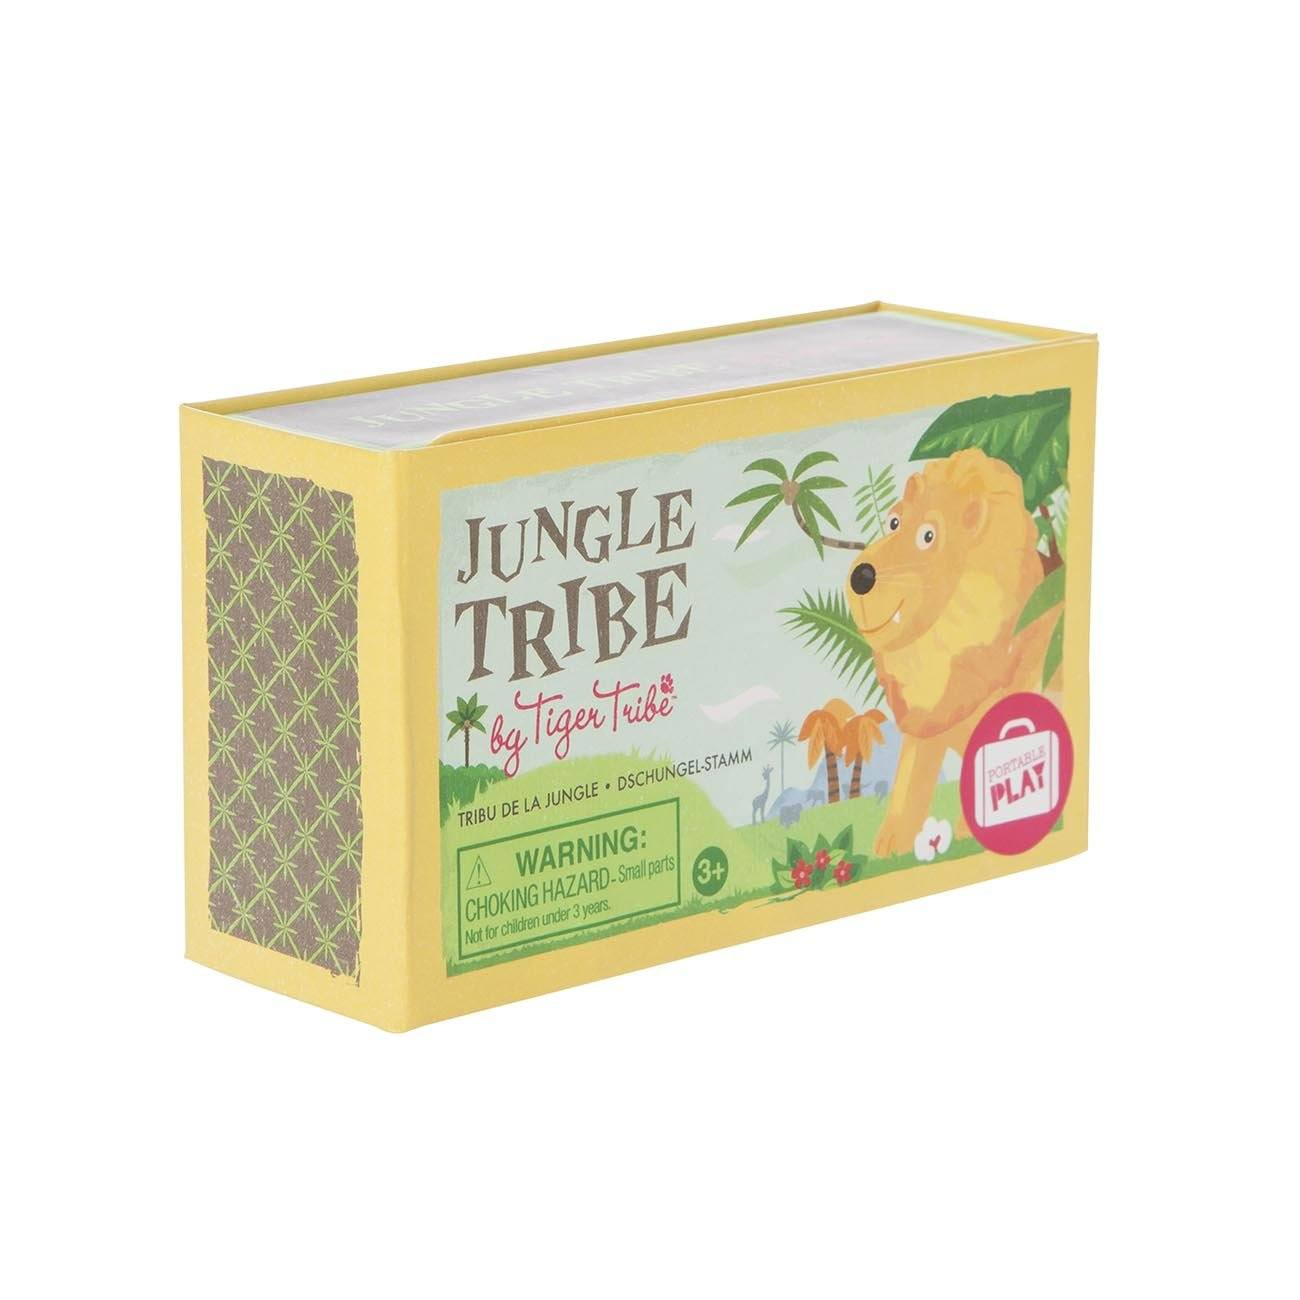 Jungle Tribe